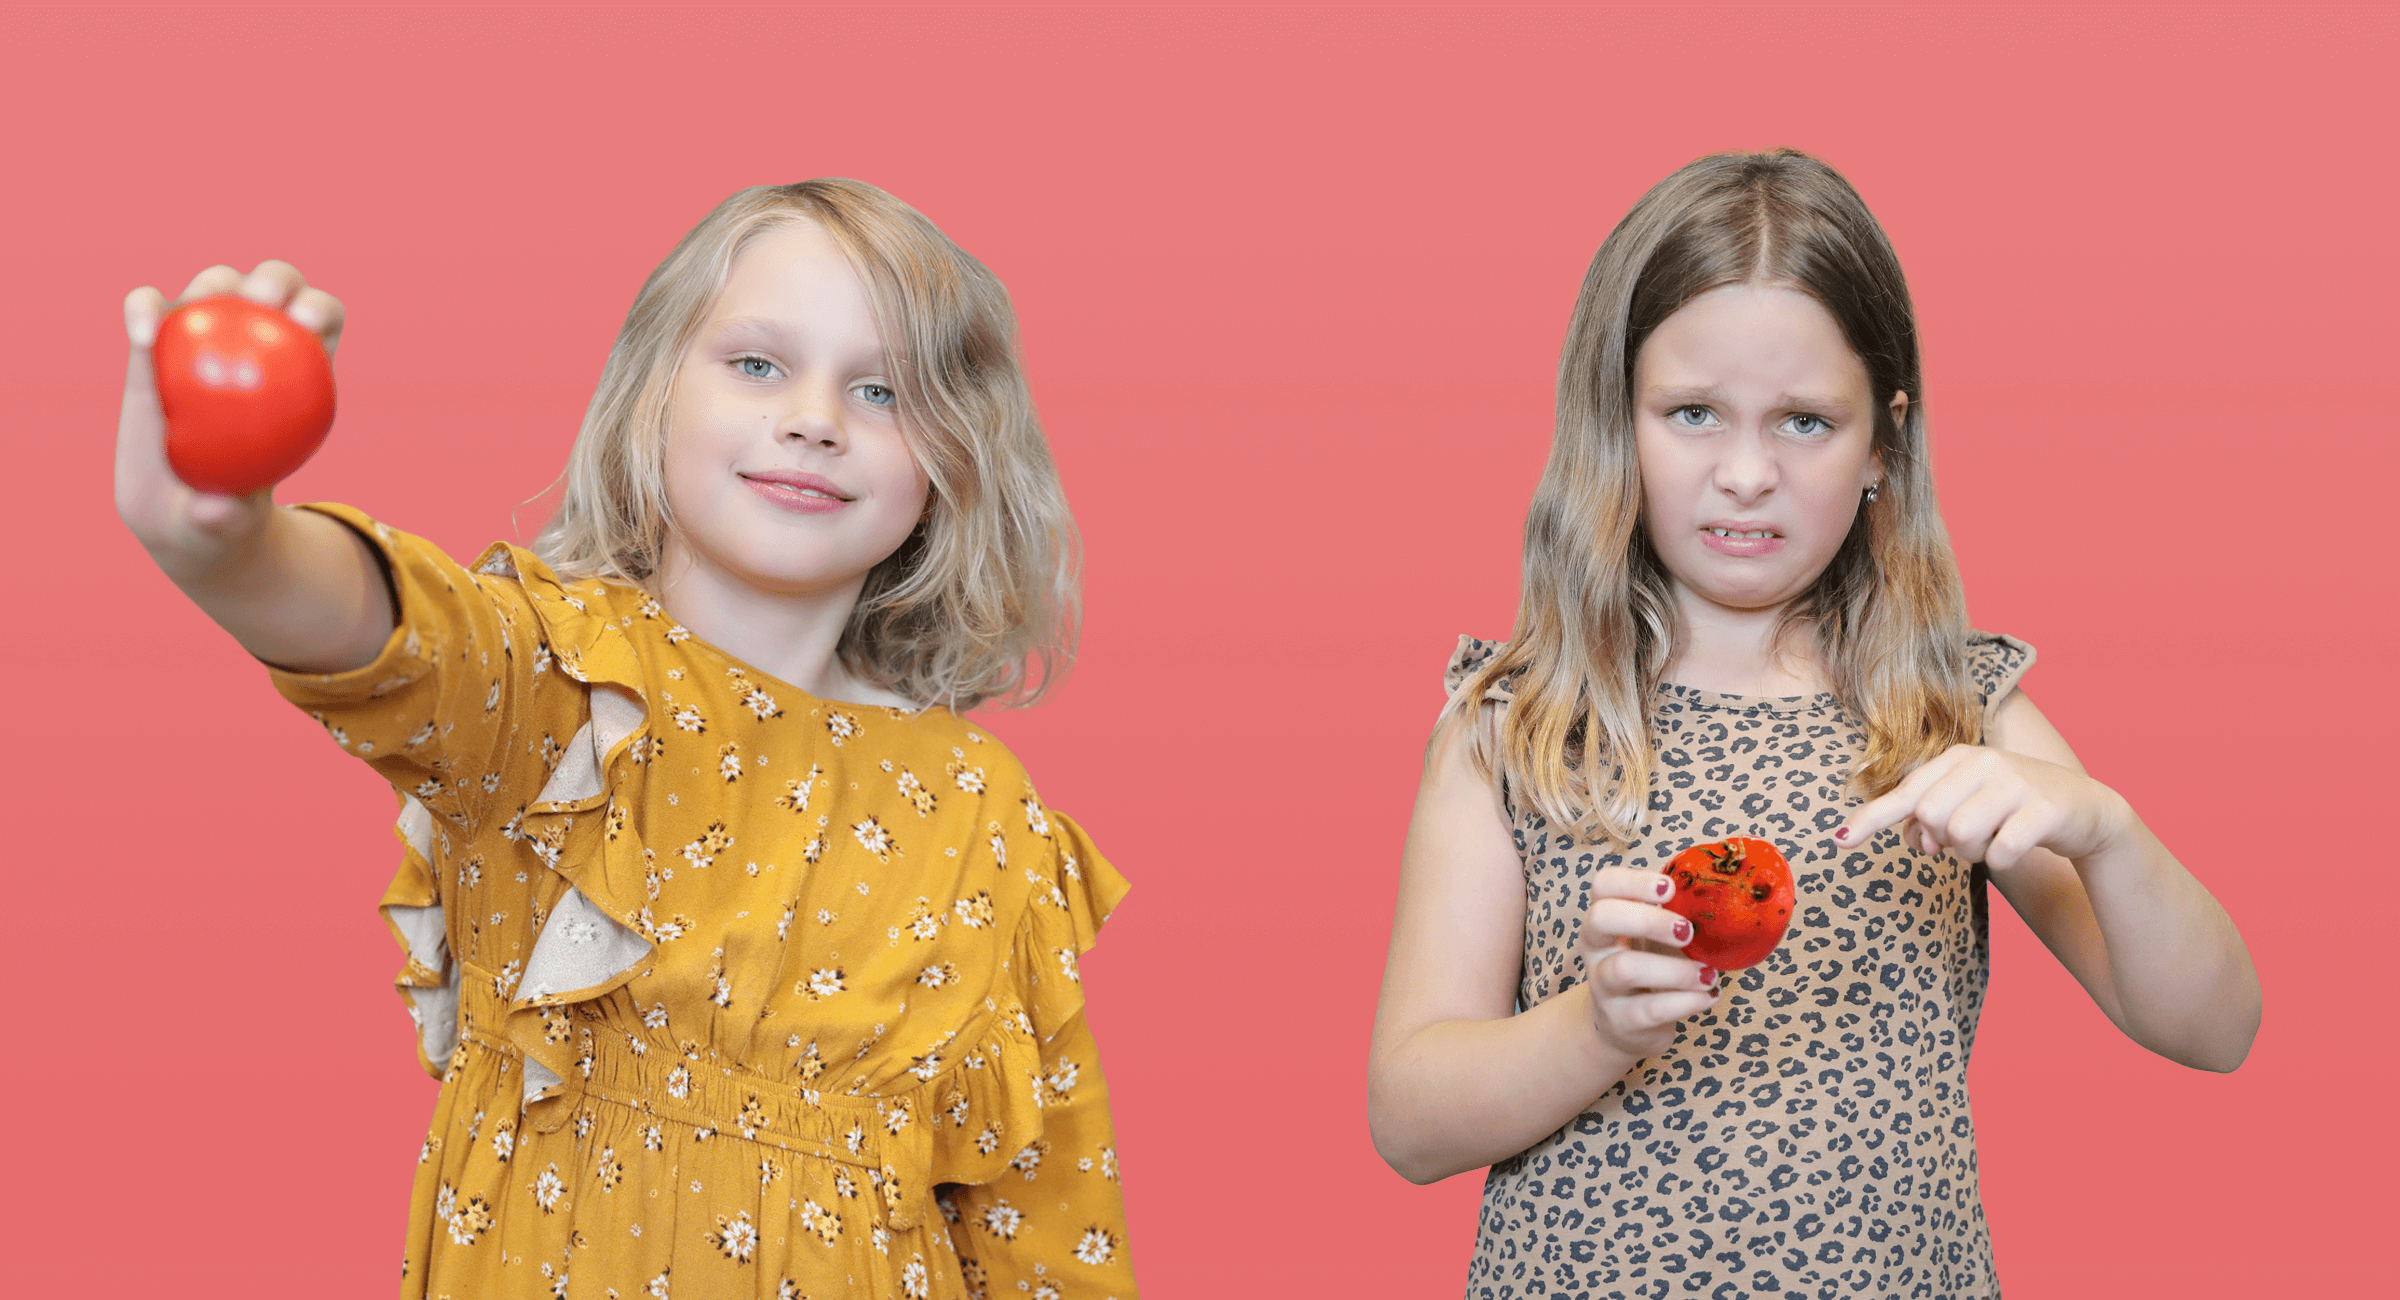 One girl holds a fresh tomato and looks confident. The other girl holds a rotten tomato and looks dissatisfaction.